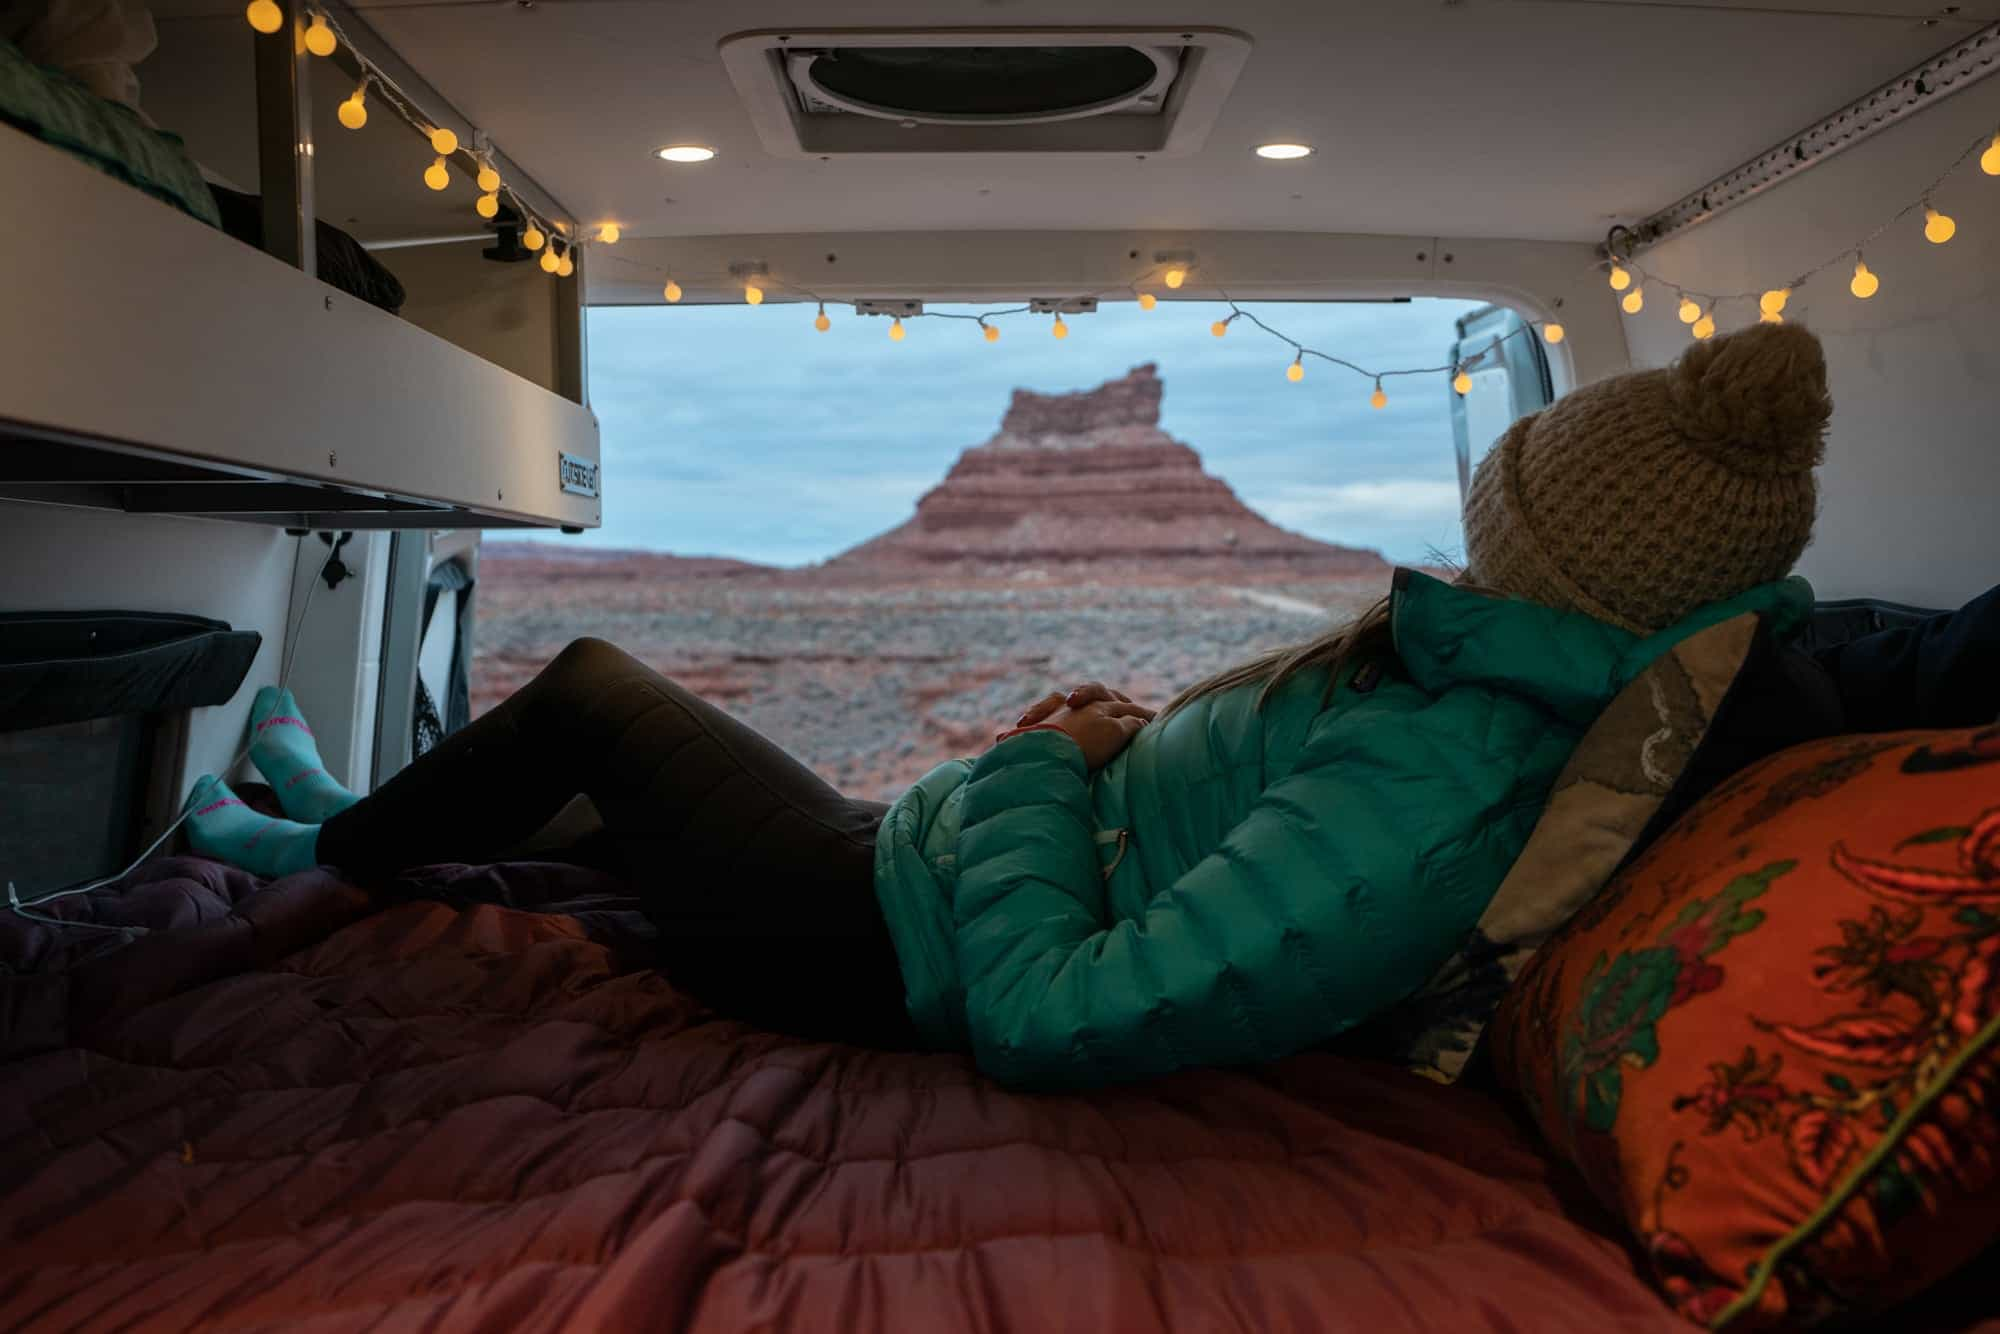 Packing for van life? Learn what clothes you need with this van life clothing checklist.